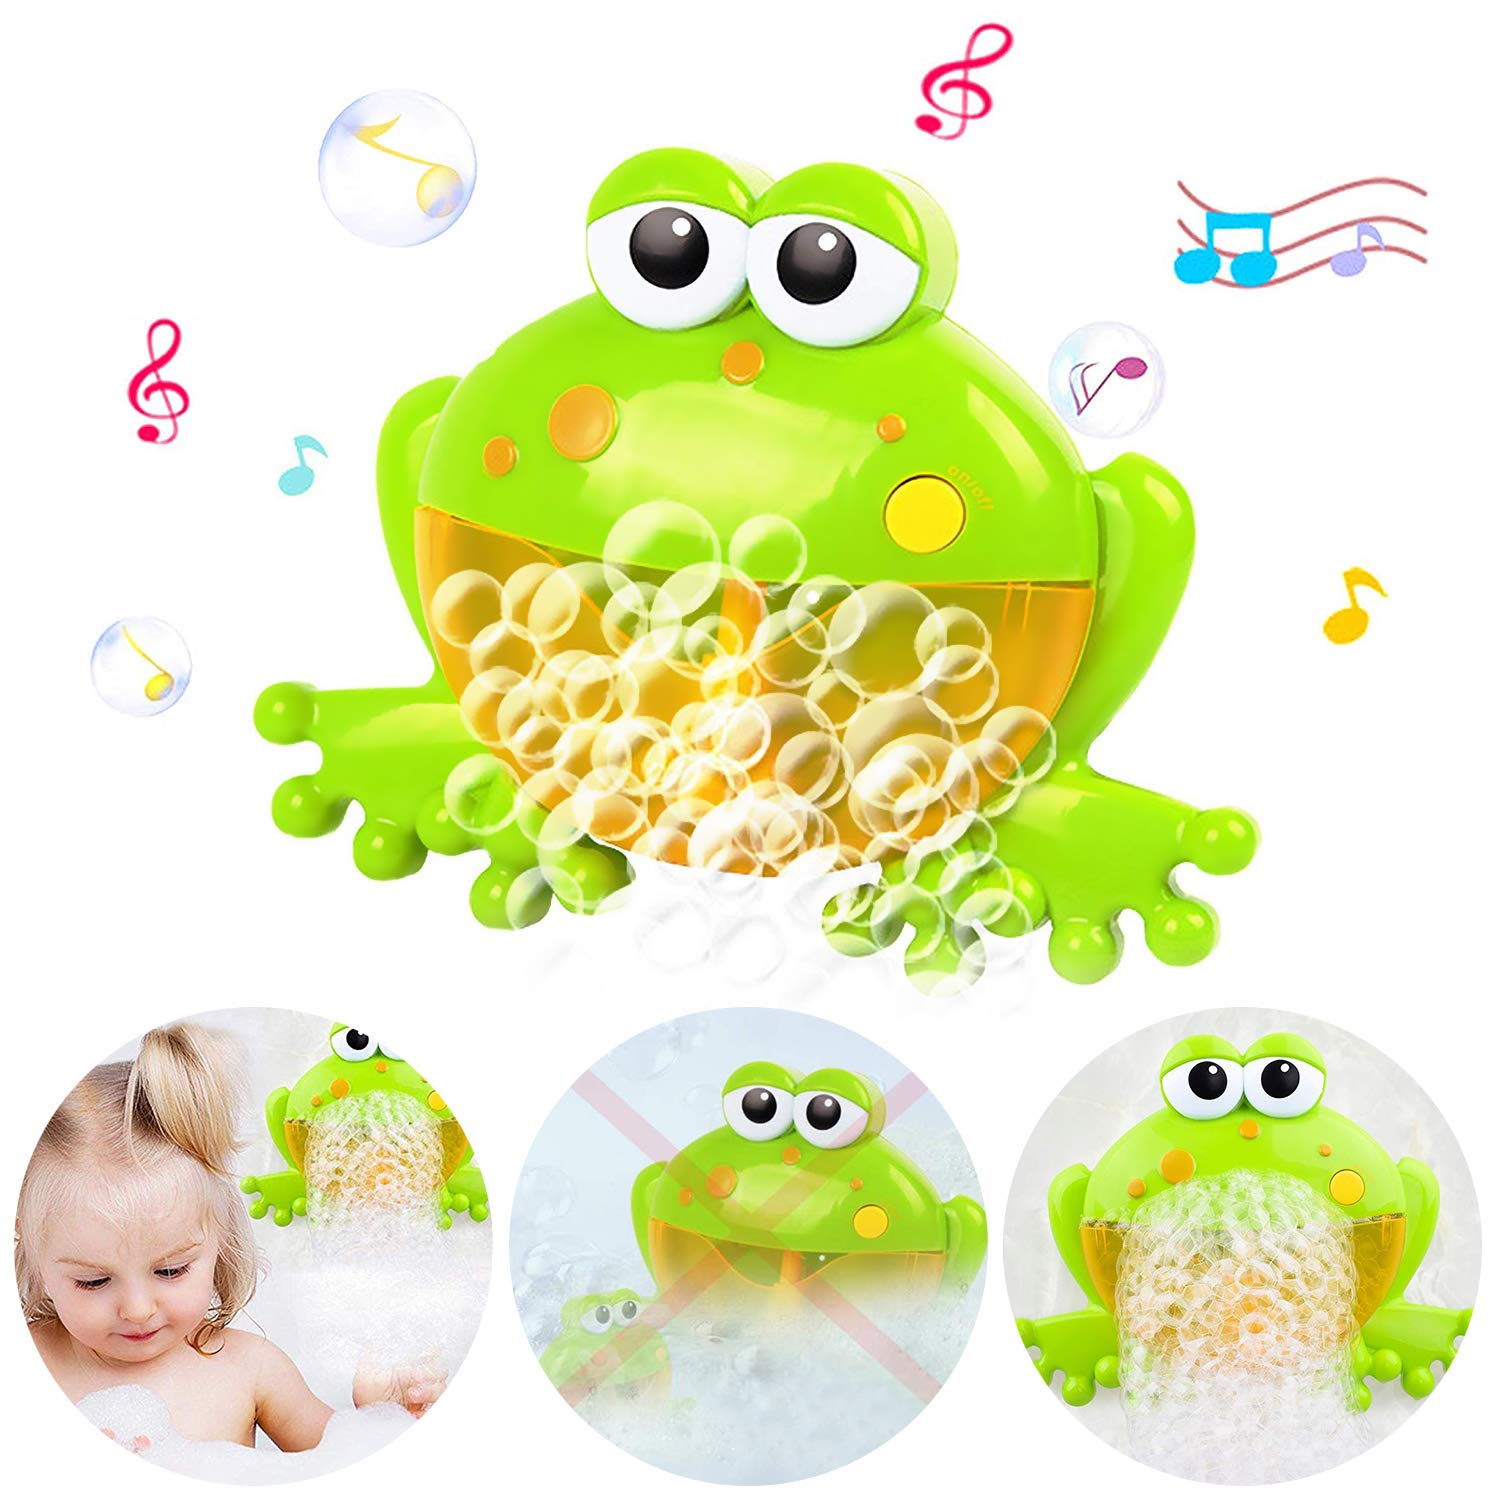 Zioblw Frog Bubble Machine For Baby Bath Toys Musical Bathtub Bubble Toy Bubble Maker With Nursery Rhyme For Infant Baby Children Kids Happy Tub Time Bubble Machine For Boys And Girls Aged 1